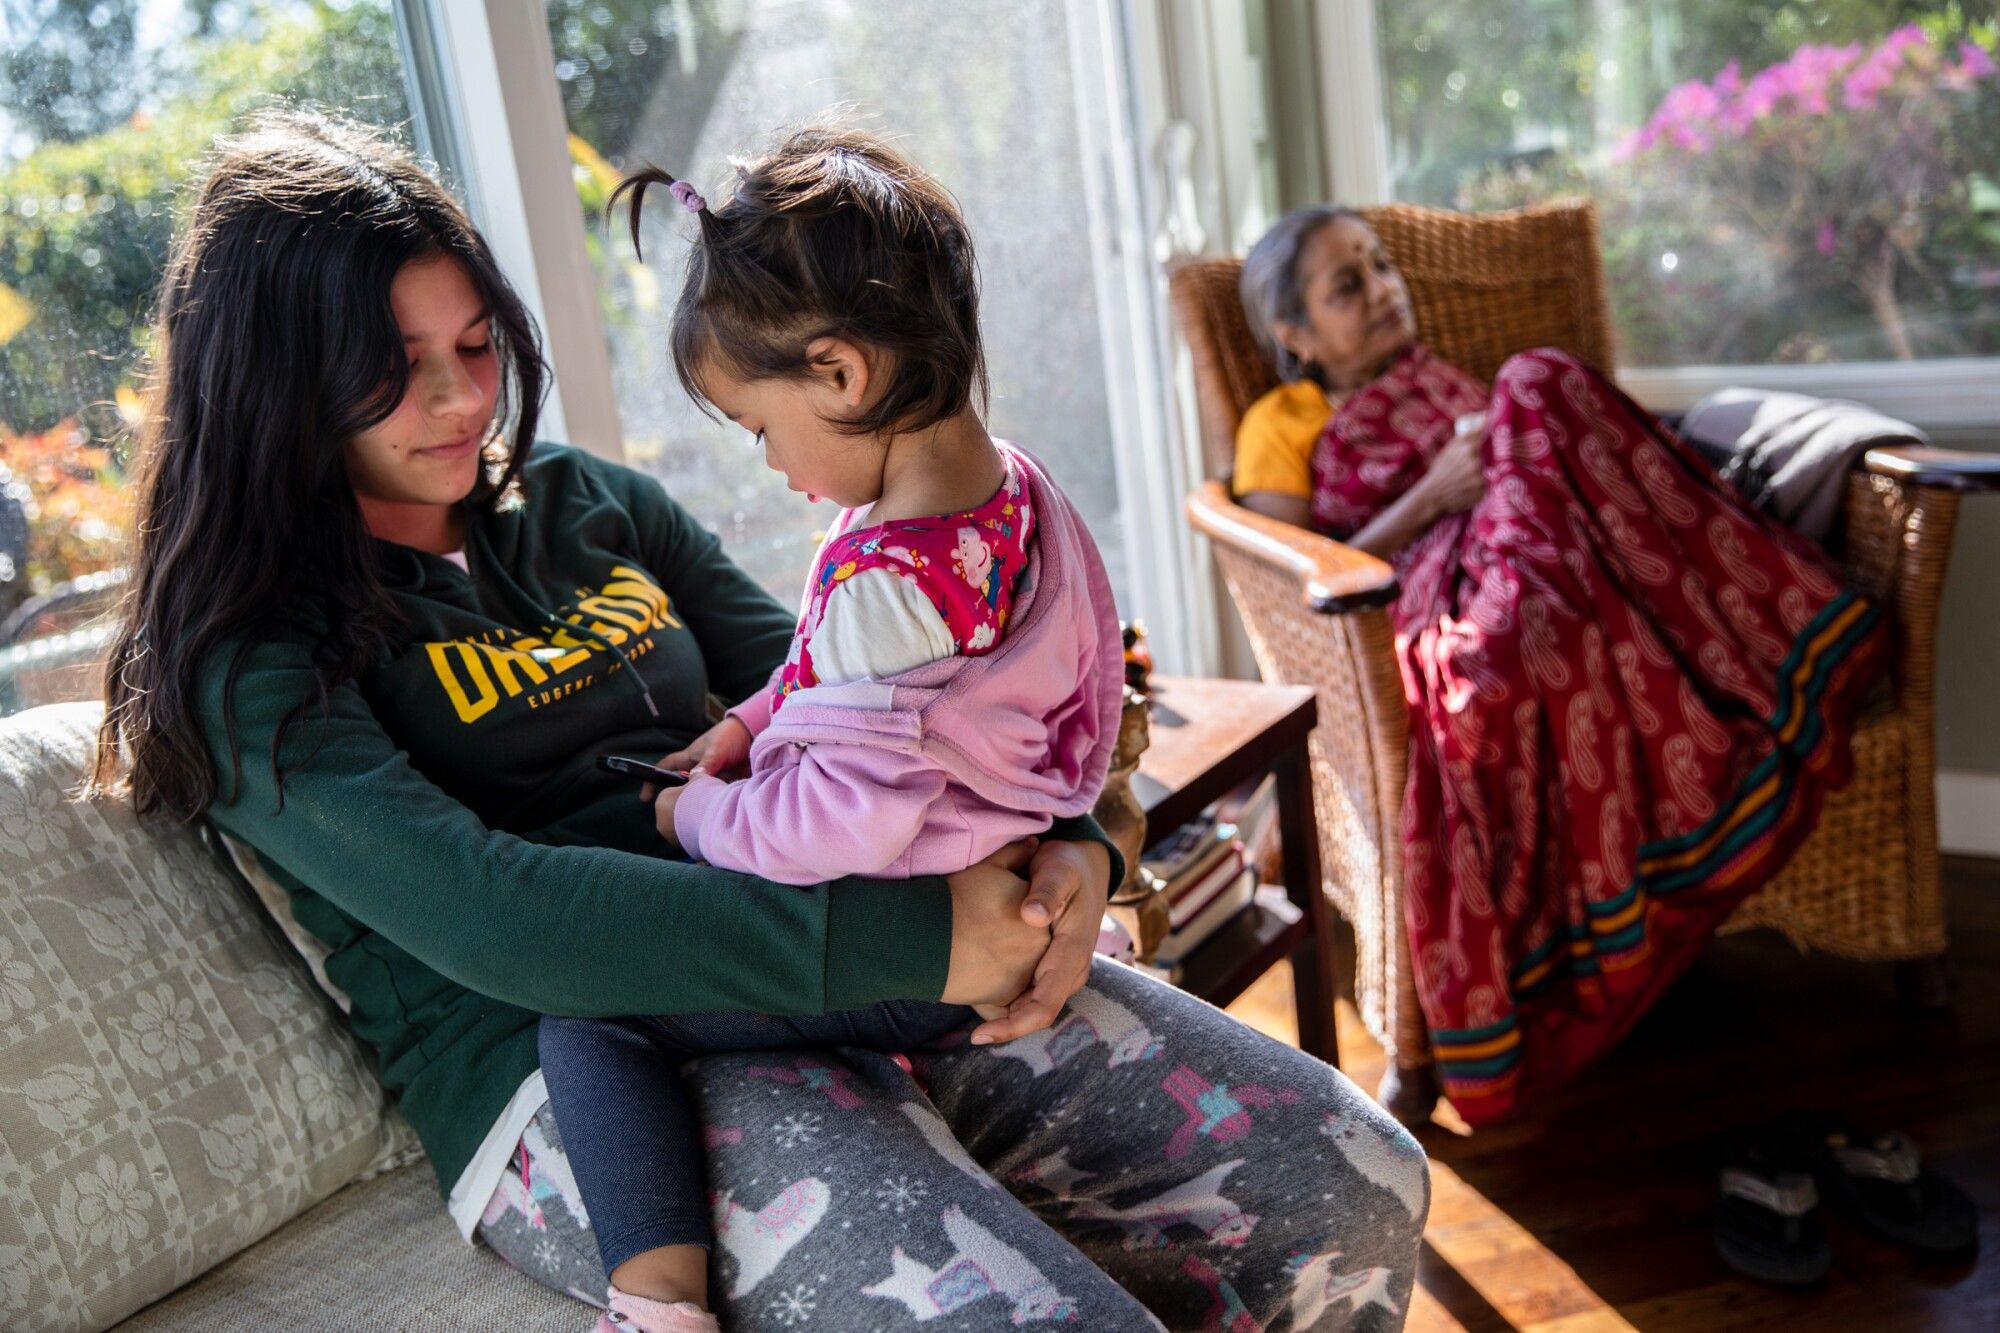 Vishaala Wilkinson holds her 2-year-old sister Lalitha at their home in Del Mar on March 2, 2021.